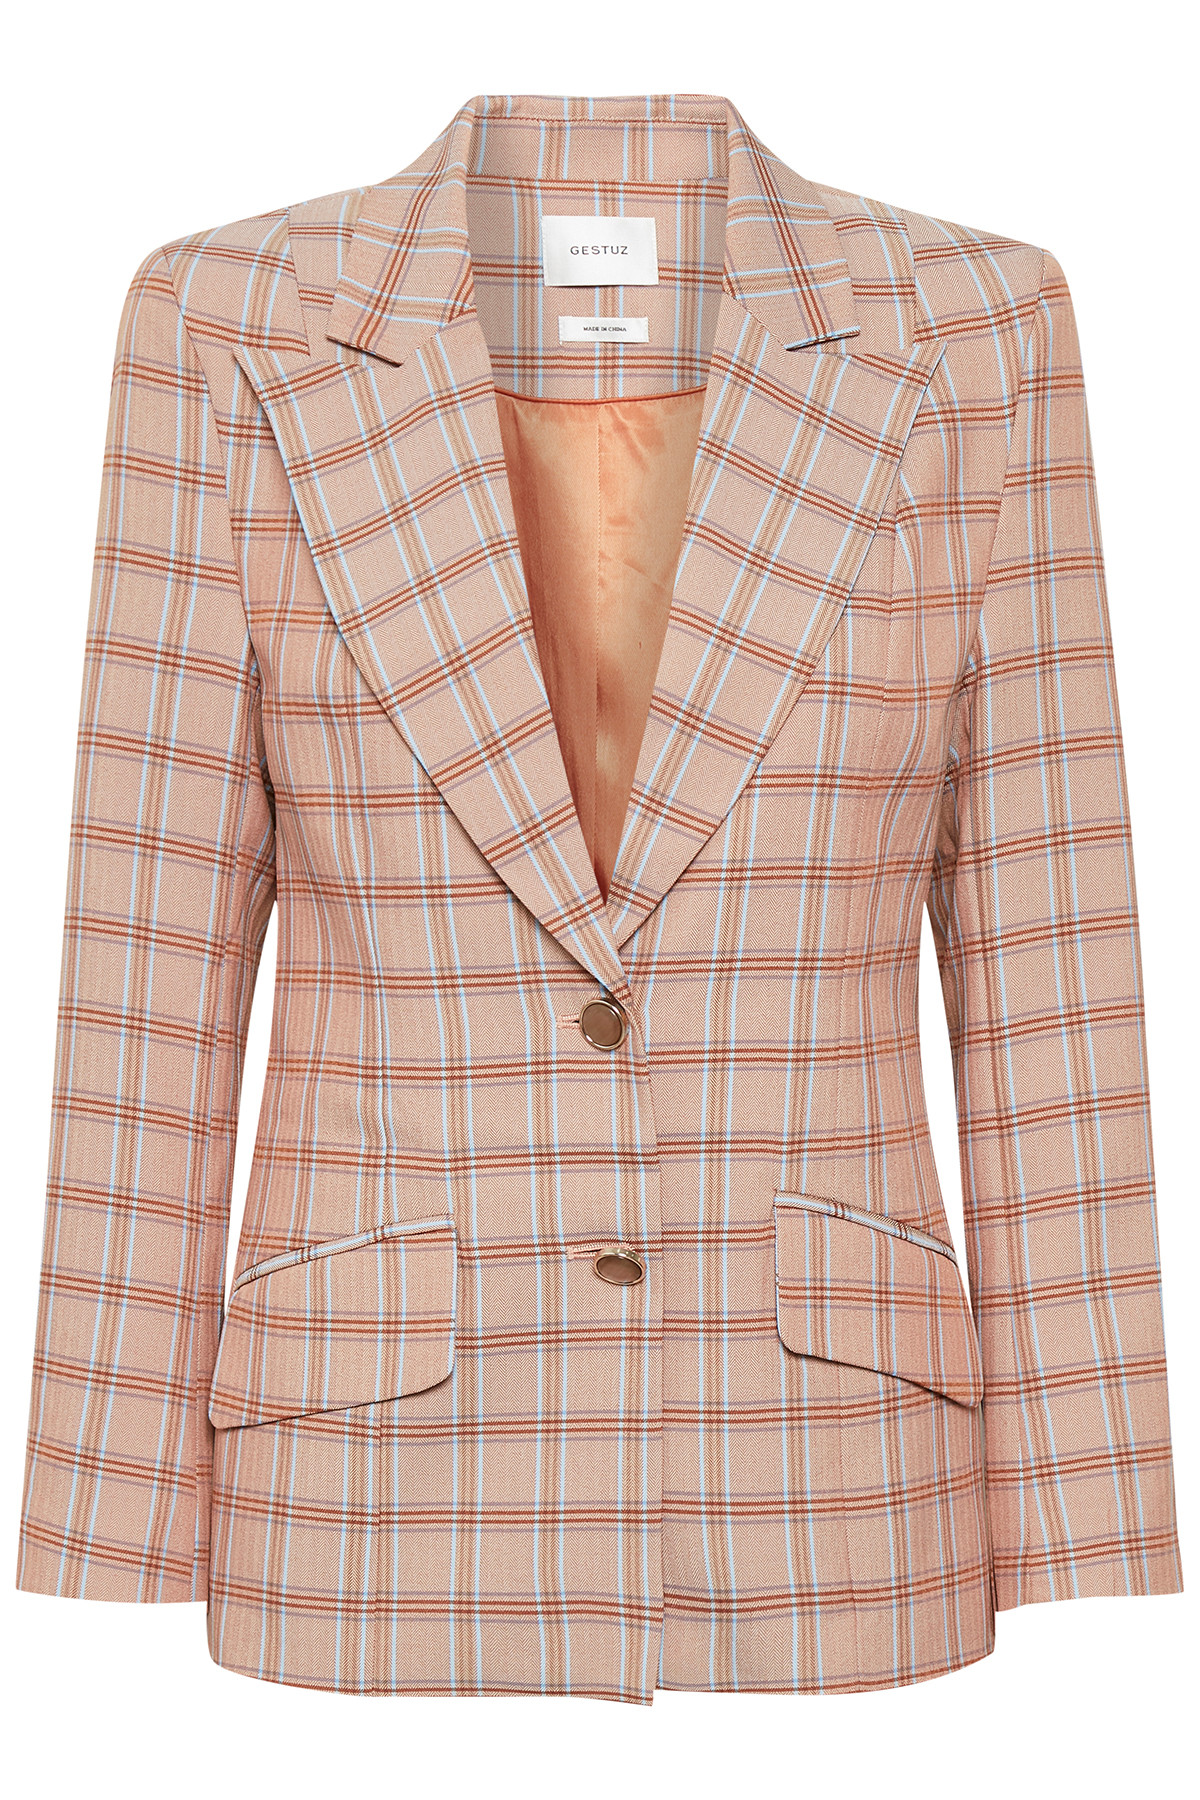 Image of   GESTUZ JINGZ BLAZER 10904090 (Light Brown Herrin 90678, 36)